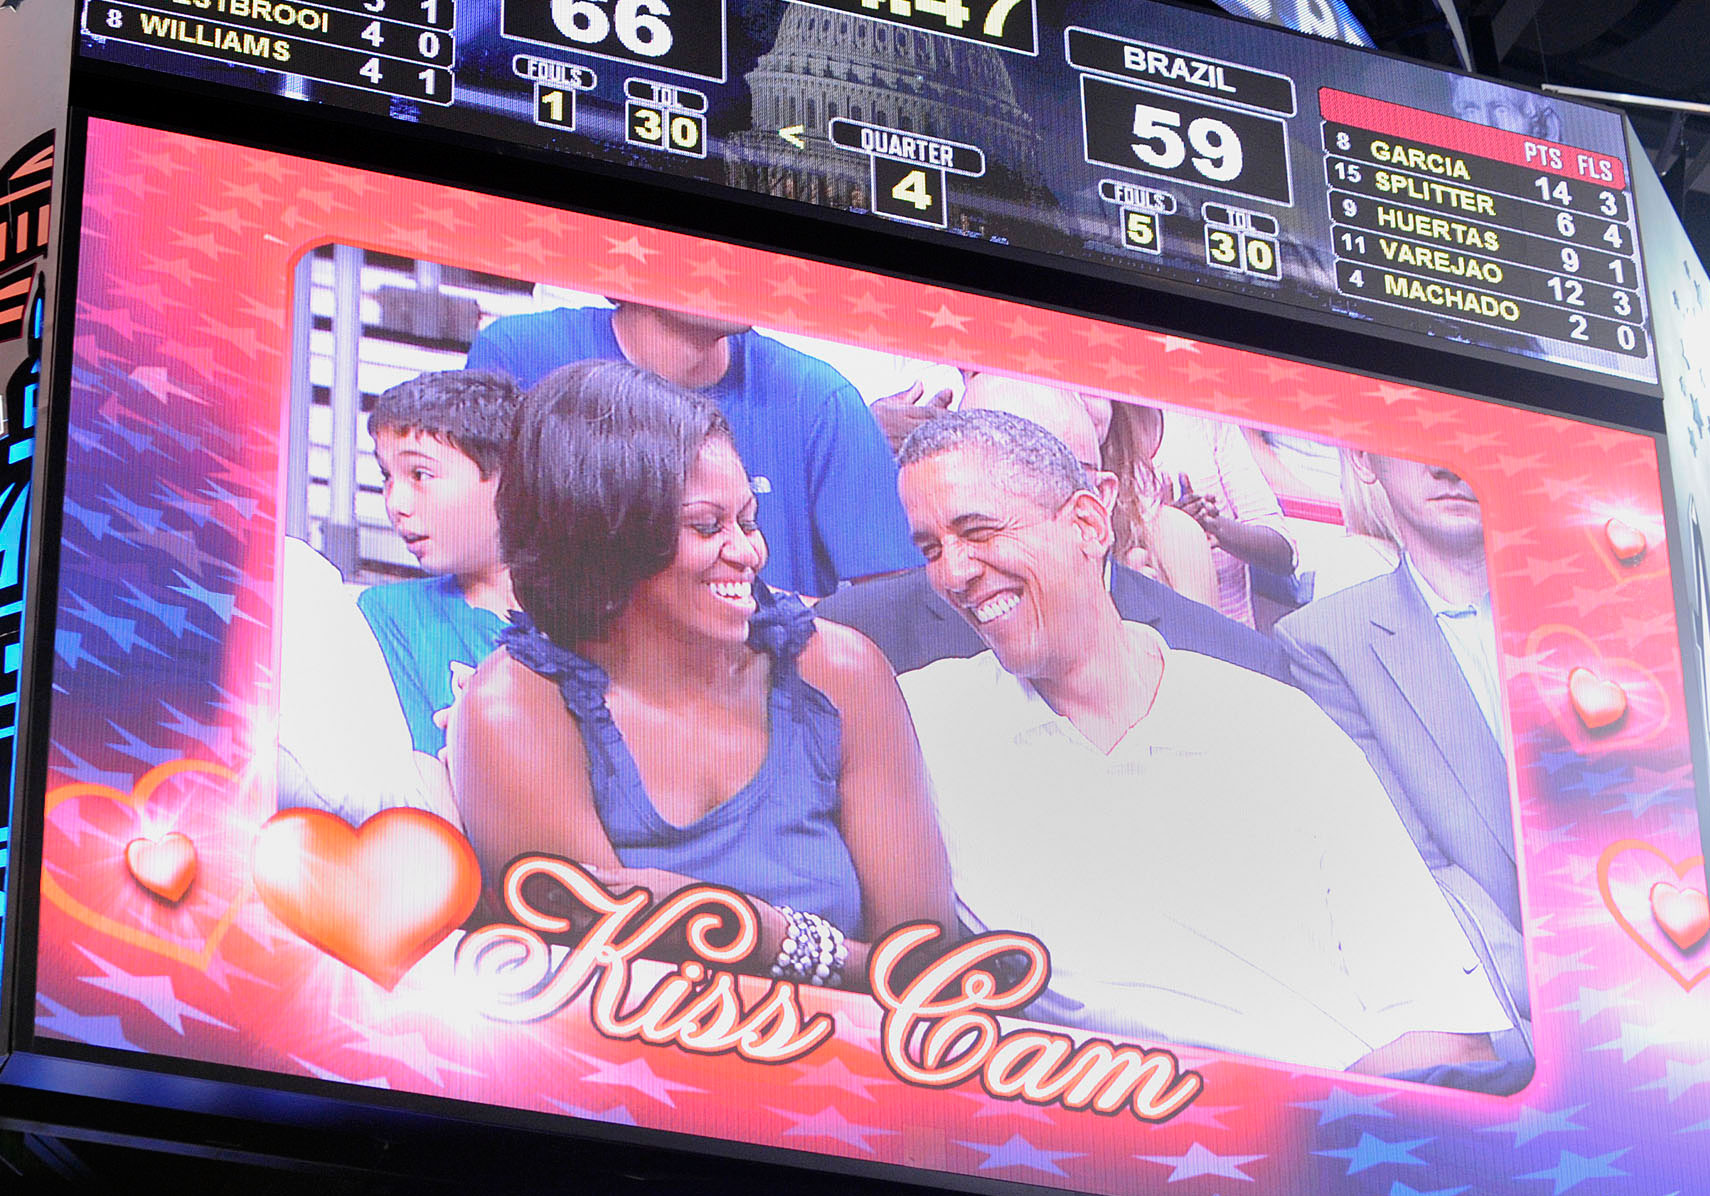 President Obama and first lady Michelle Obama are caught on Kiss Cam at a basketball game. (Getty Images)